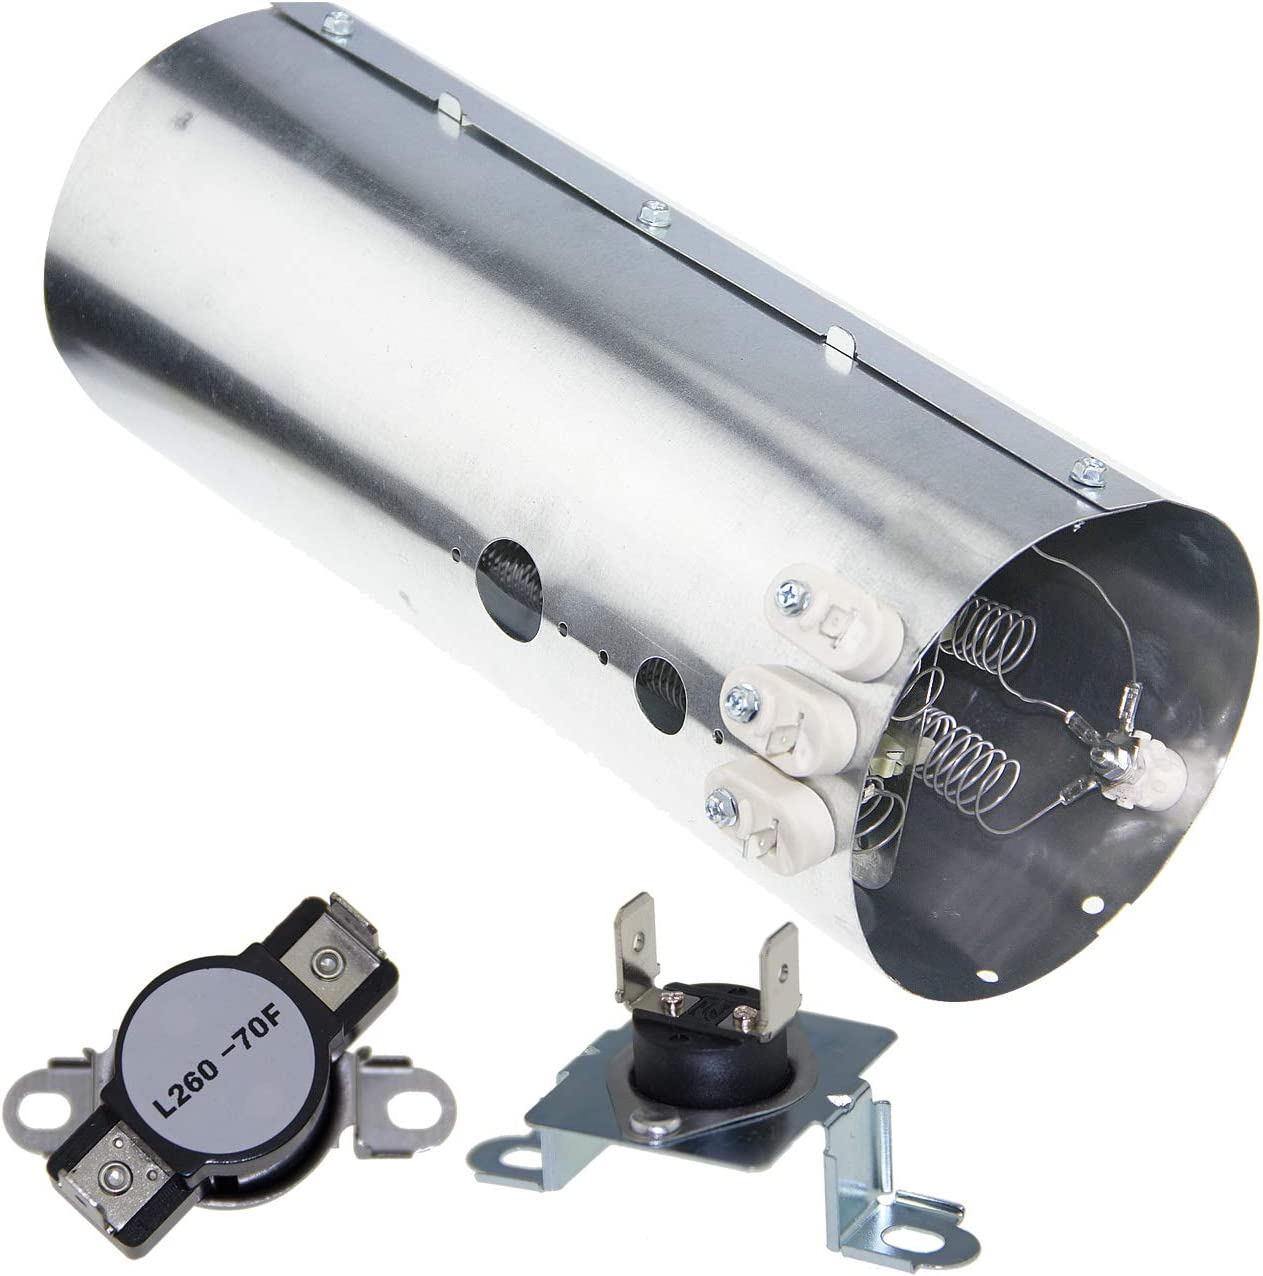 Replacement 134792700 Dryer Heating Element, 137032600 Thermal Limiter and 3204267 Thermostat Compatible with Electrolux Frigidaire PS2349309 AP436865